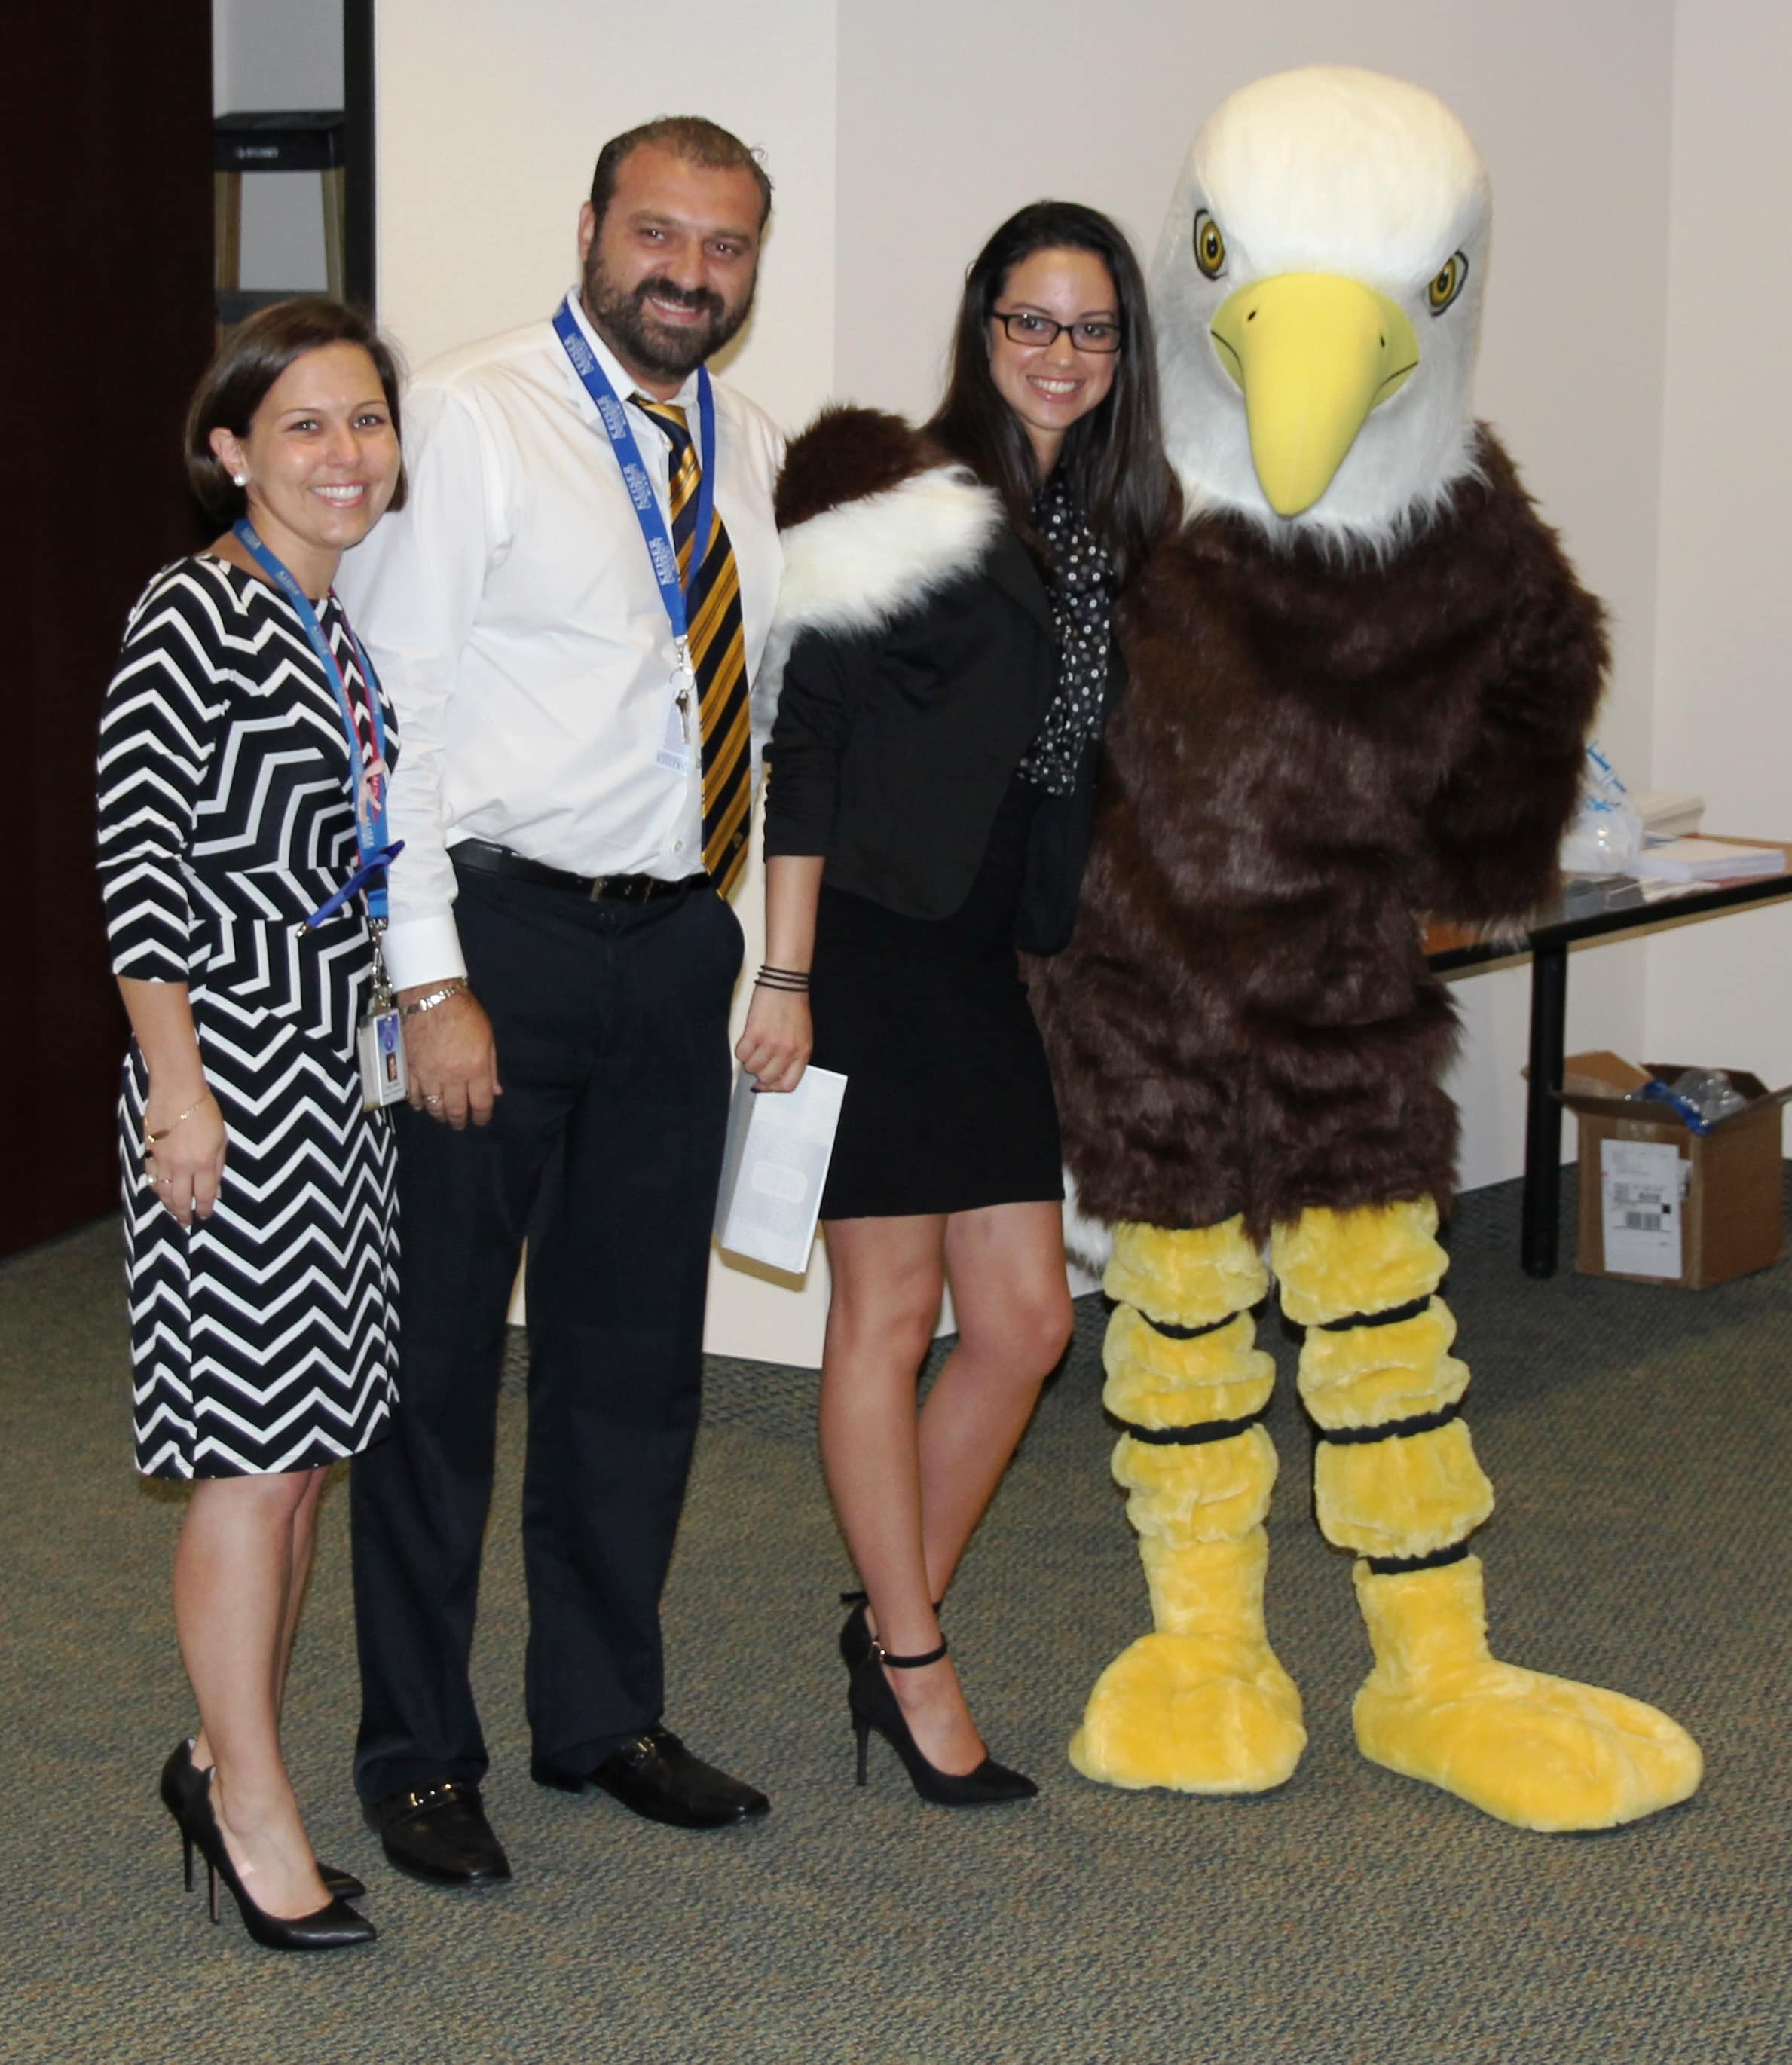 UPS Scholarship is Presented in Miami